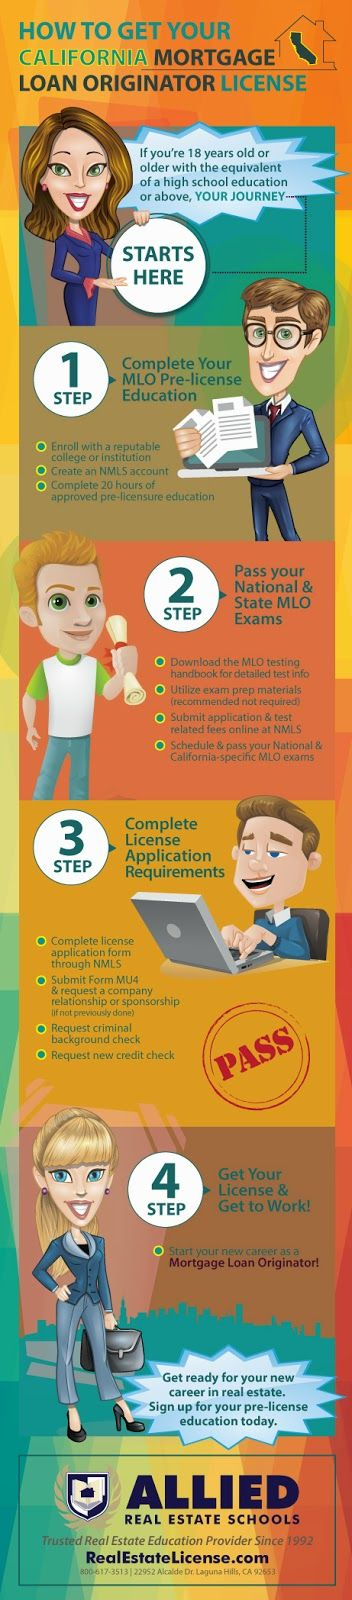 Real Estate News And Views: How To Get Your California Mortgage Loan Originator License - Infographic